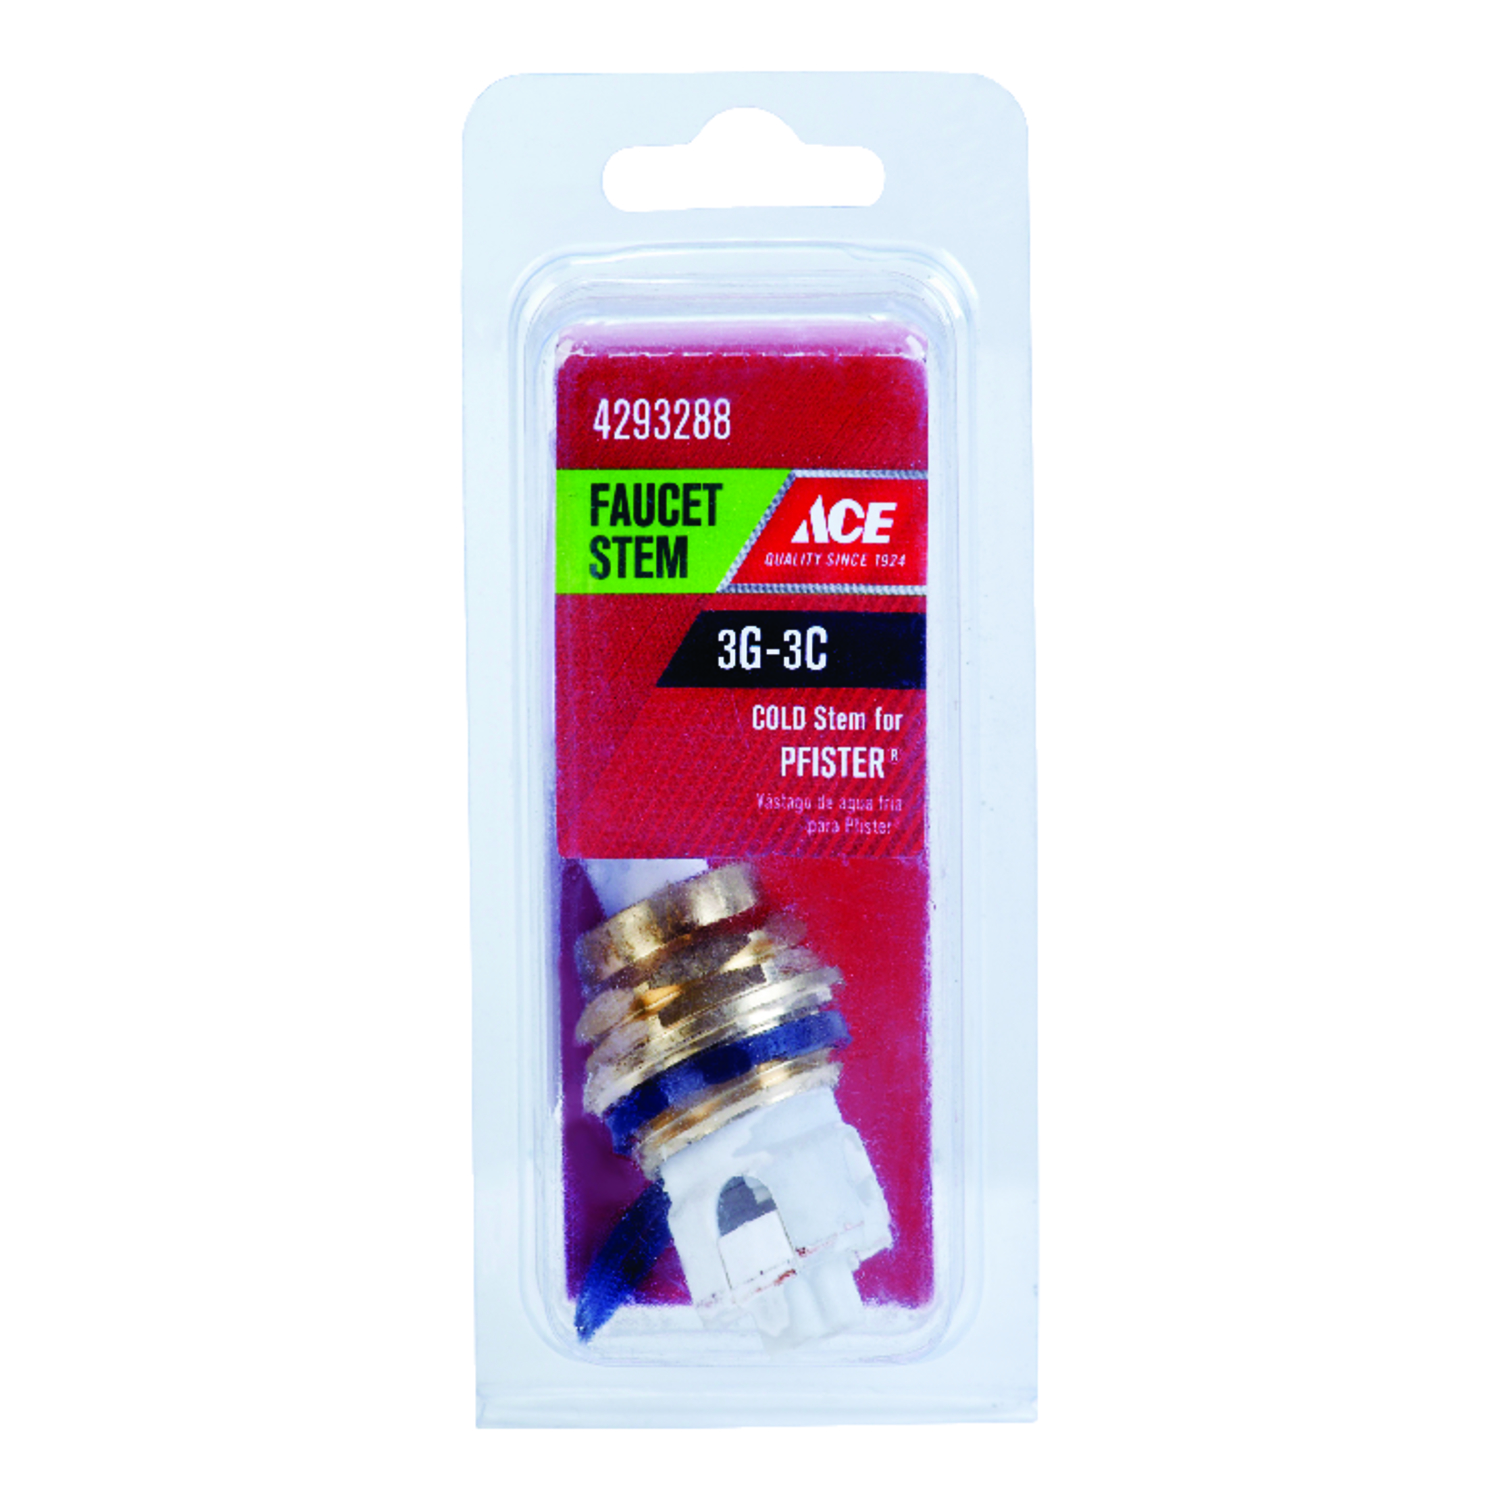 Ace Cold 3G-3C Faucet Stem For Pfister - Ace Hardware